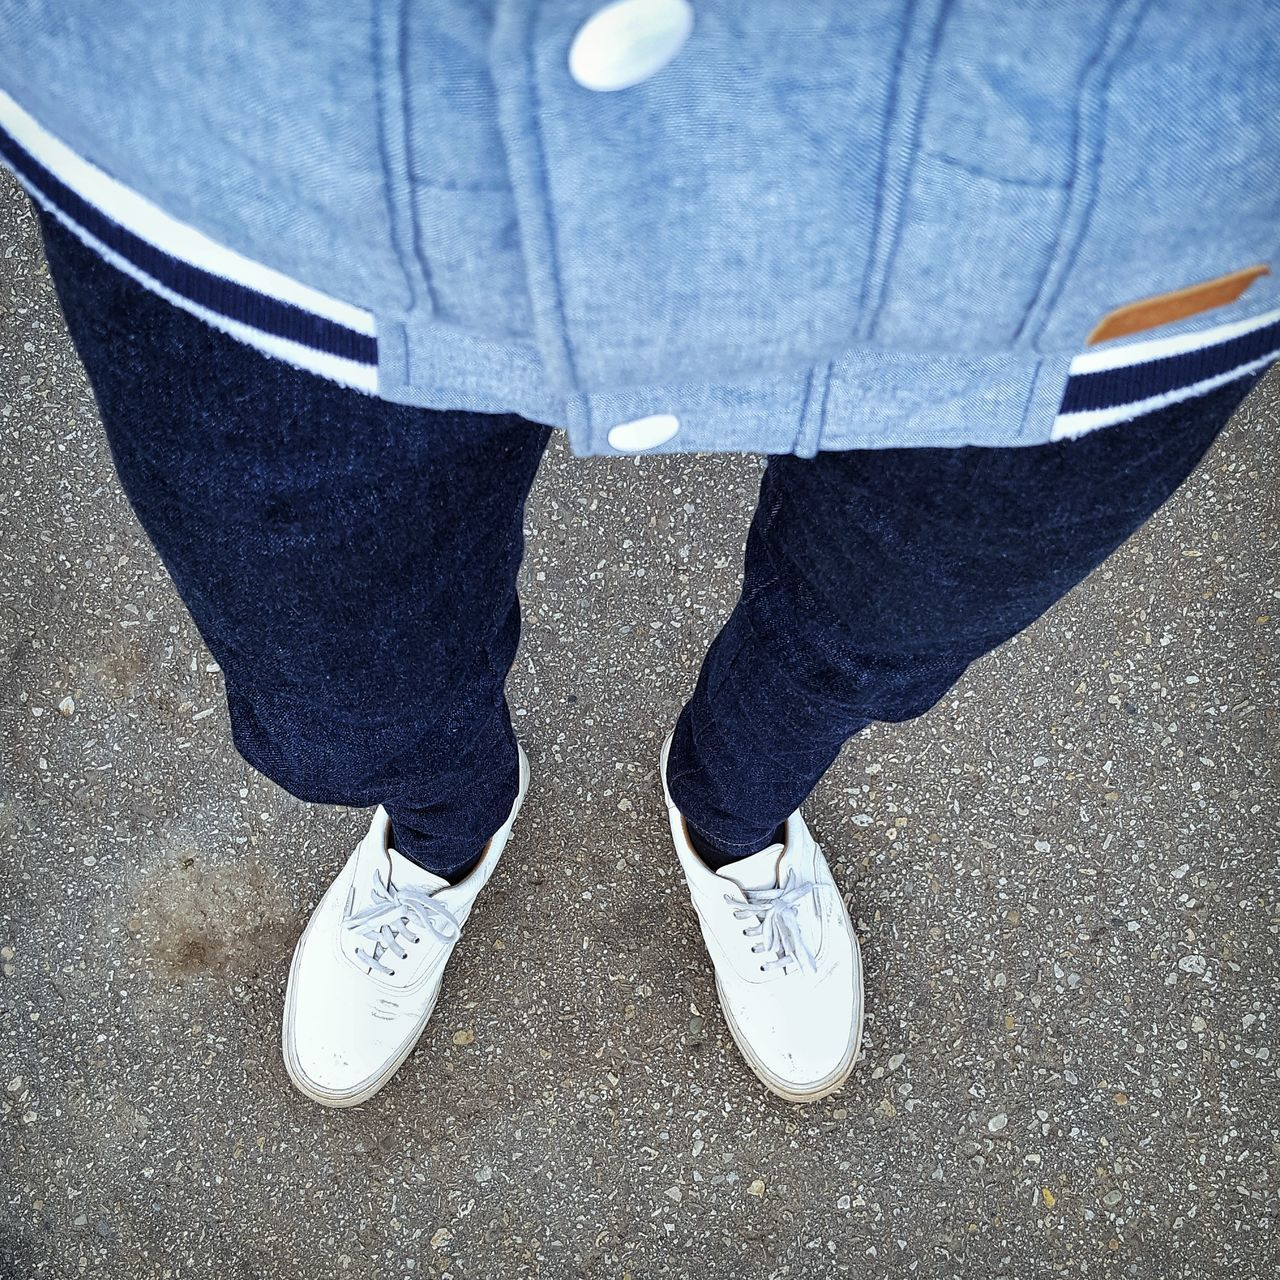 Mensfashion Menstyle Close-up Lifestyles Well-dressed Low Section One Person Streetwear Outfit Outfitoftheday Outfitpost Streetfashion WIWT Sneakers